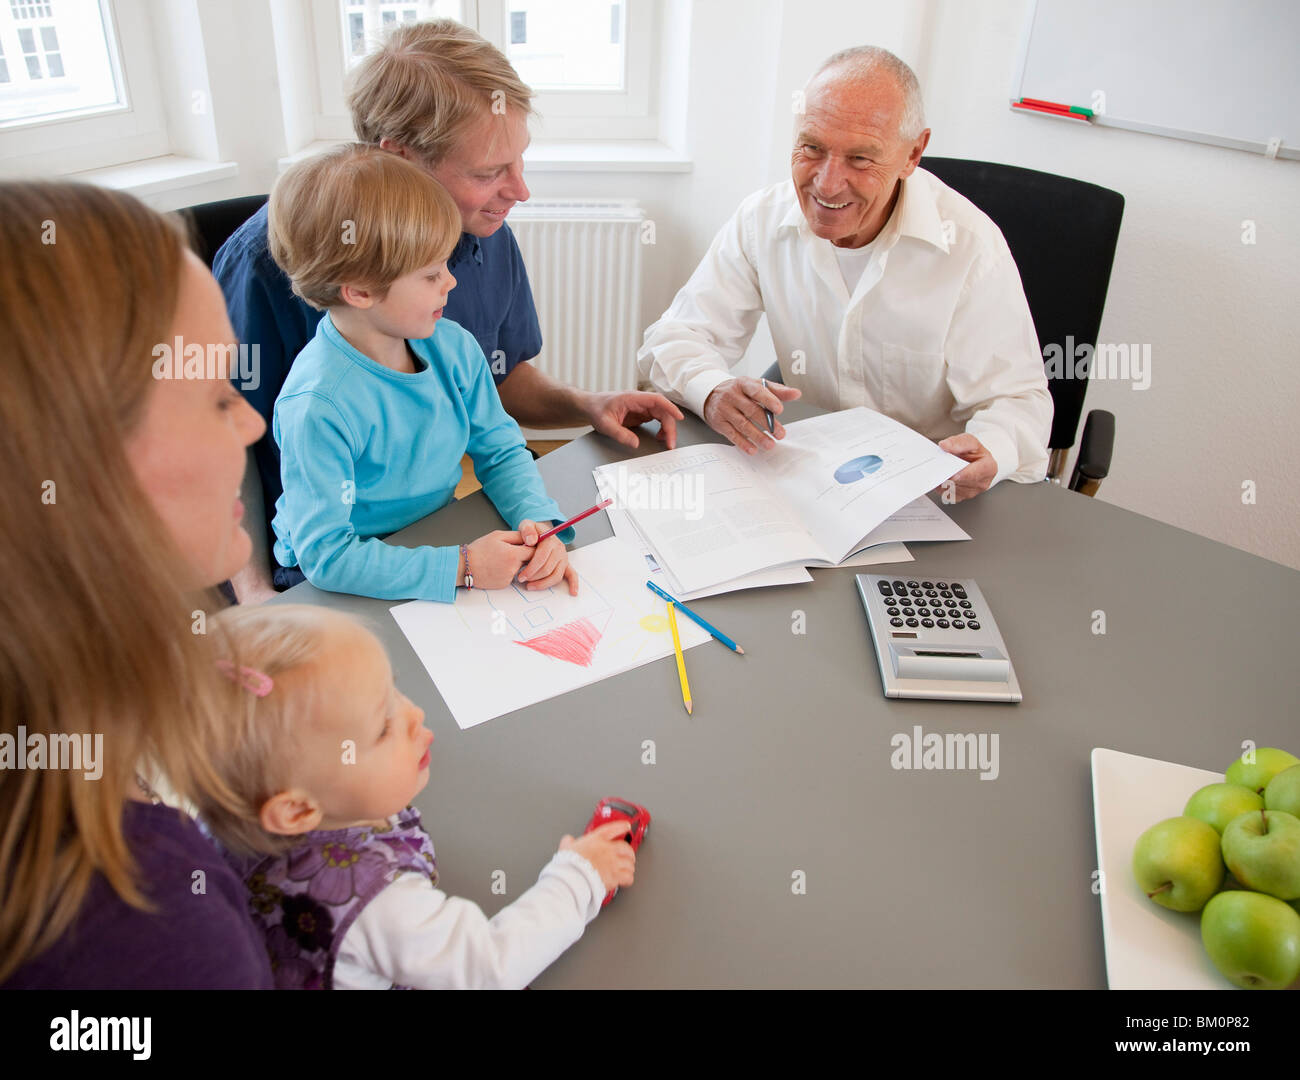 Advisor discussing papers with a family Stock Photo